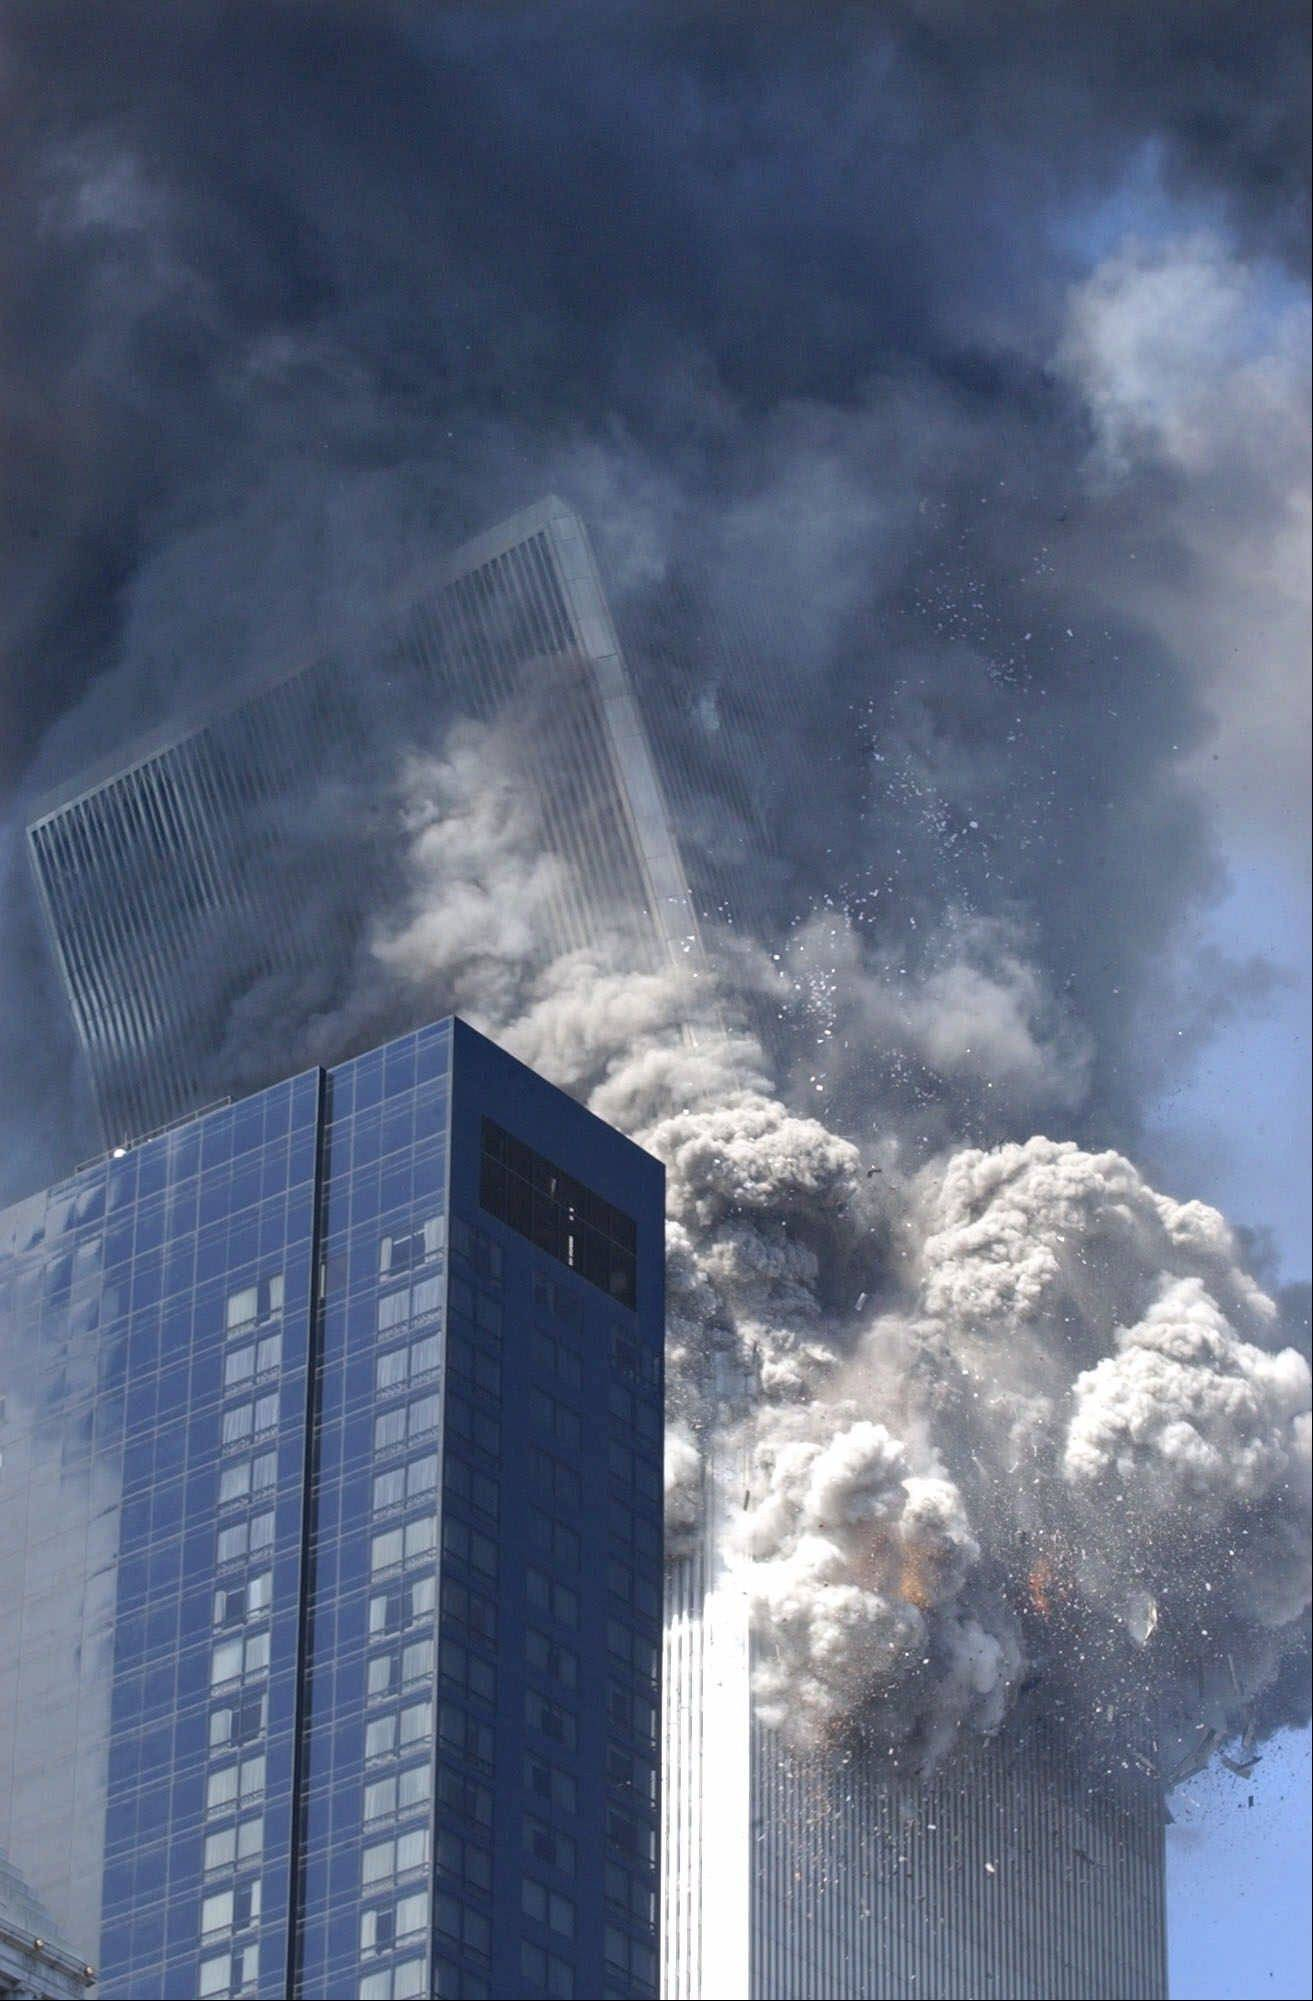 Amy Sancetta took this picture as the south tower of the World Trade Center began to collapse on Sept. 11, 2001.